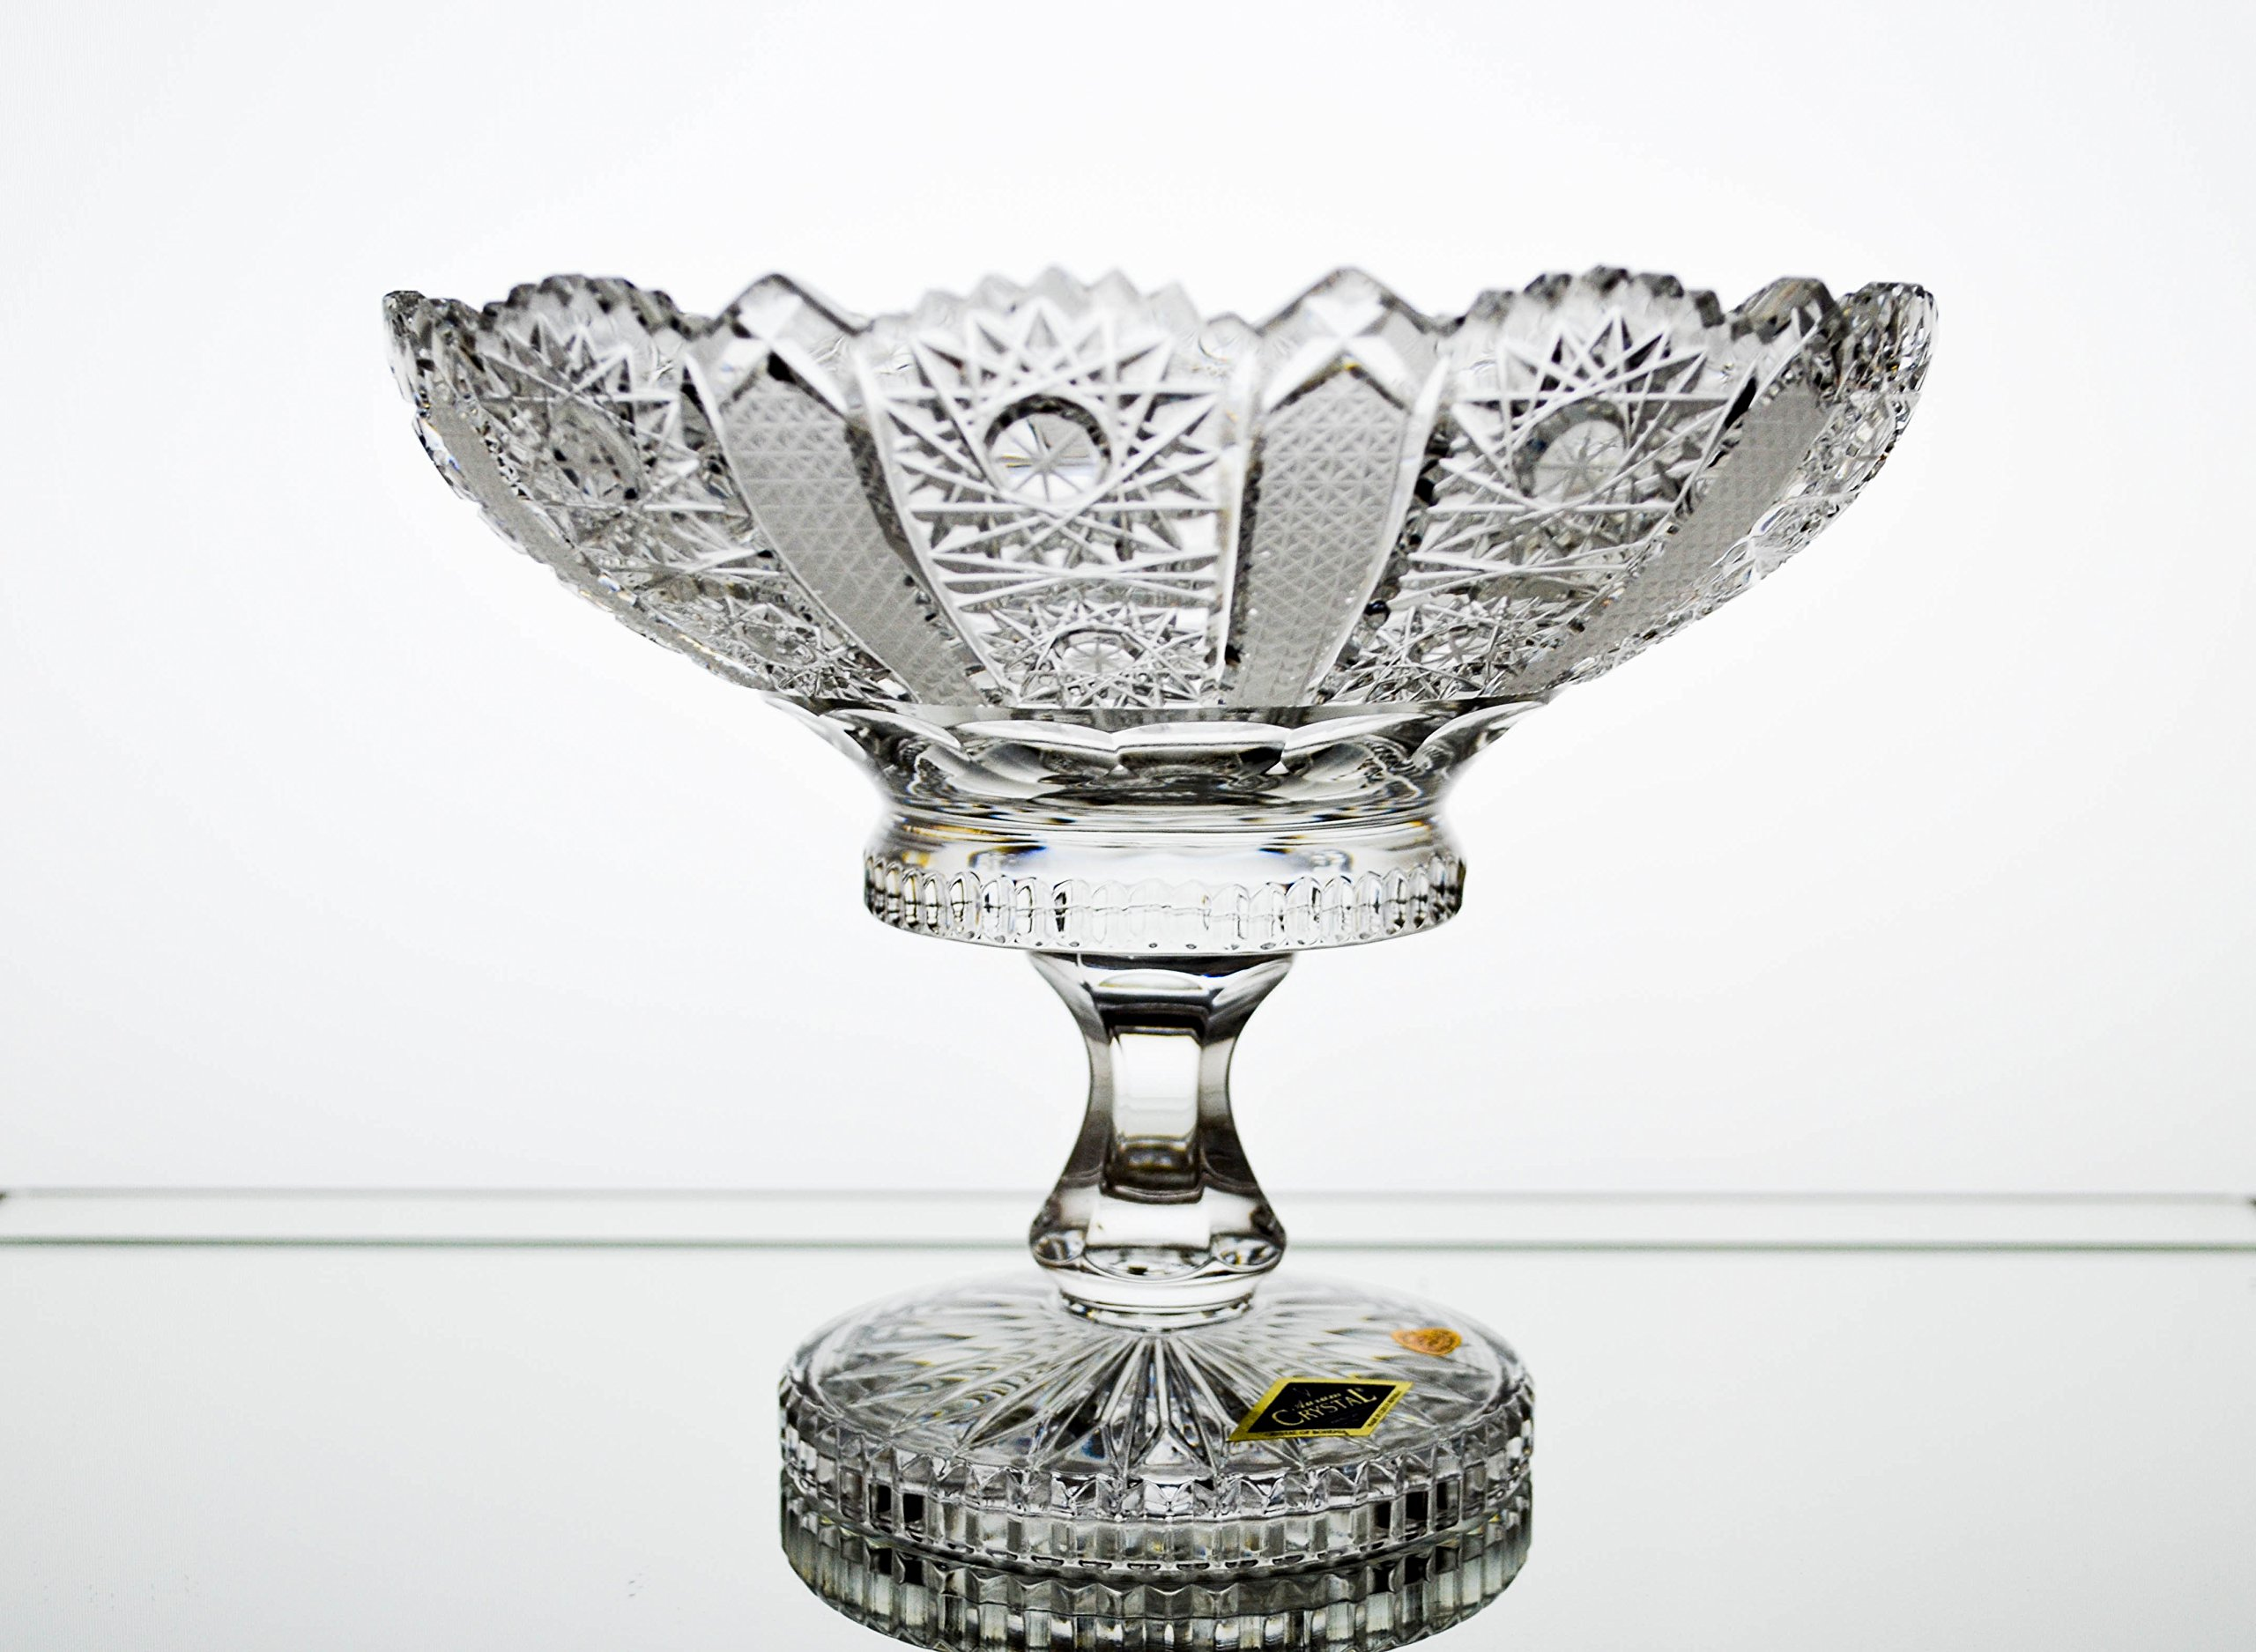 BOHEMIAN CRYSTAL GLASS FOOTED BOWL-VASE D-8'' DECORATIVE WEDDING GIFT HAND CUT CRYSTAL GLASS BOWL VINTAGE EUROPEAN DESIGN ELEGANT CENTERPIECE FRUITS DESSERTS CANDIES CLASSIC CZECH CRYSTAL GLASS